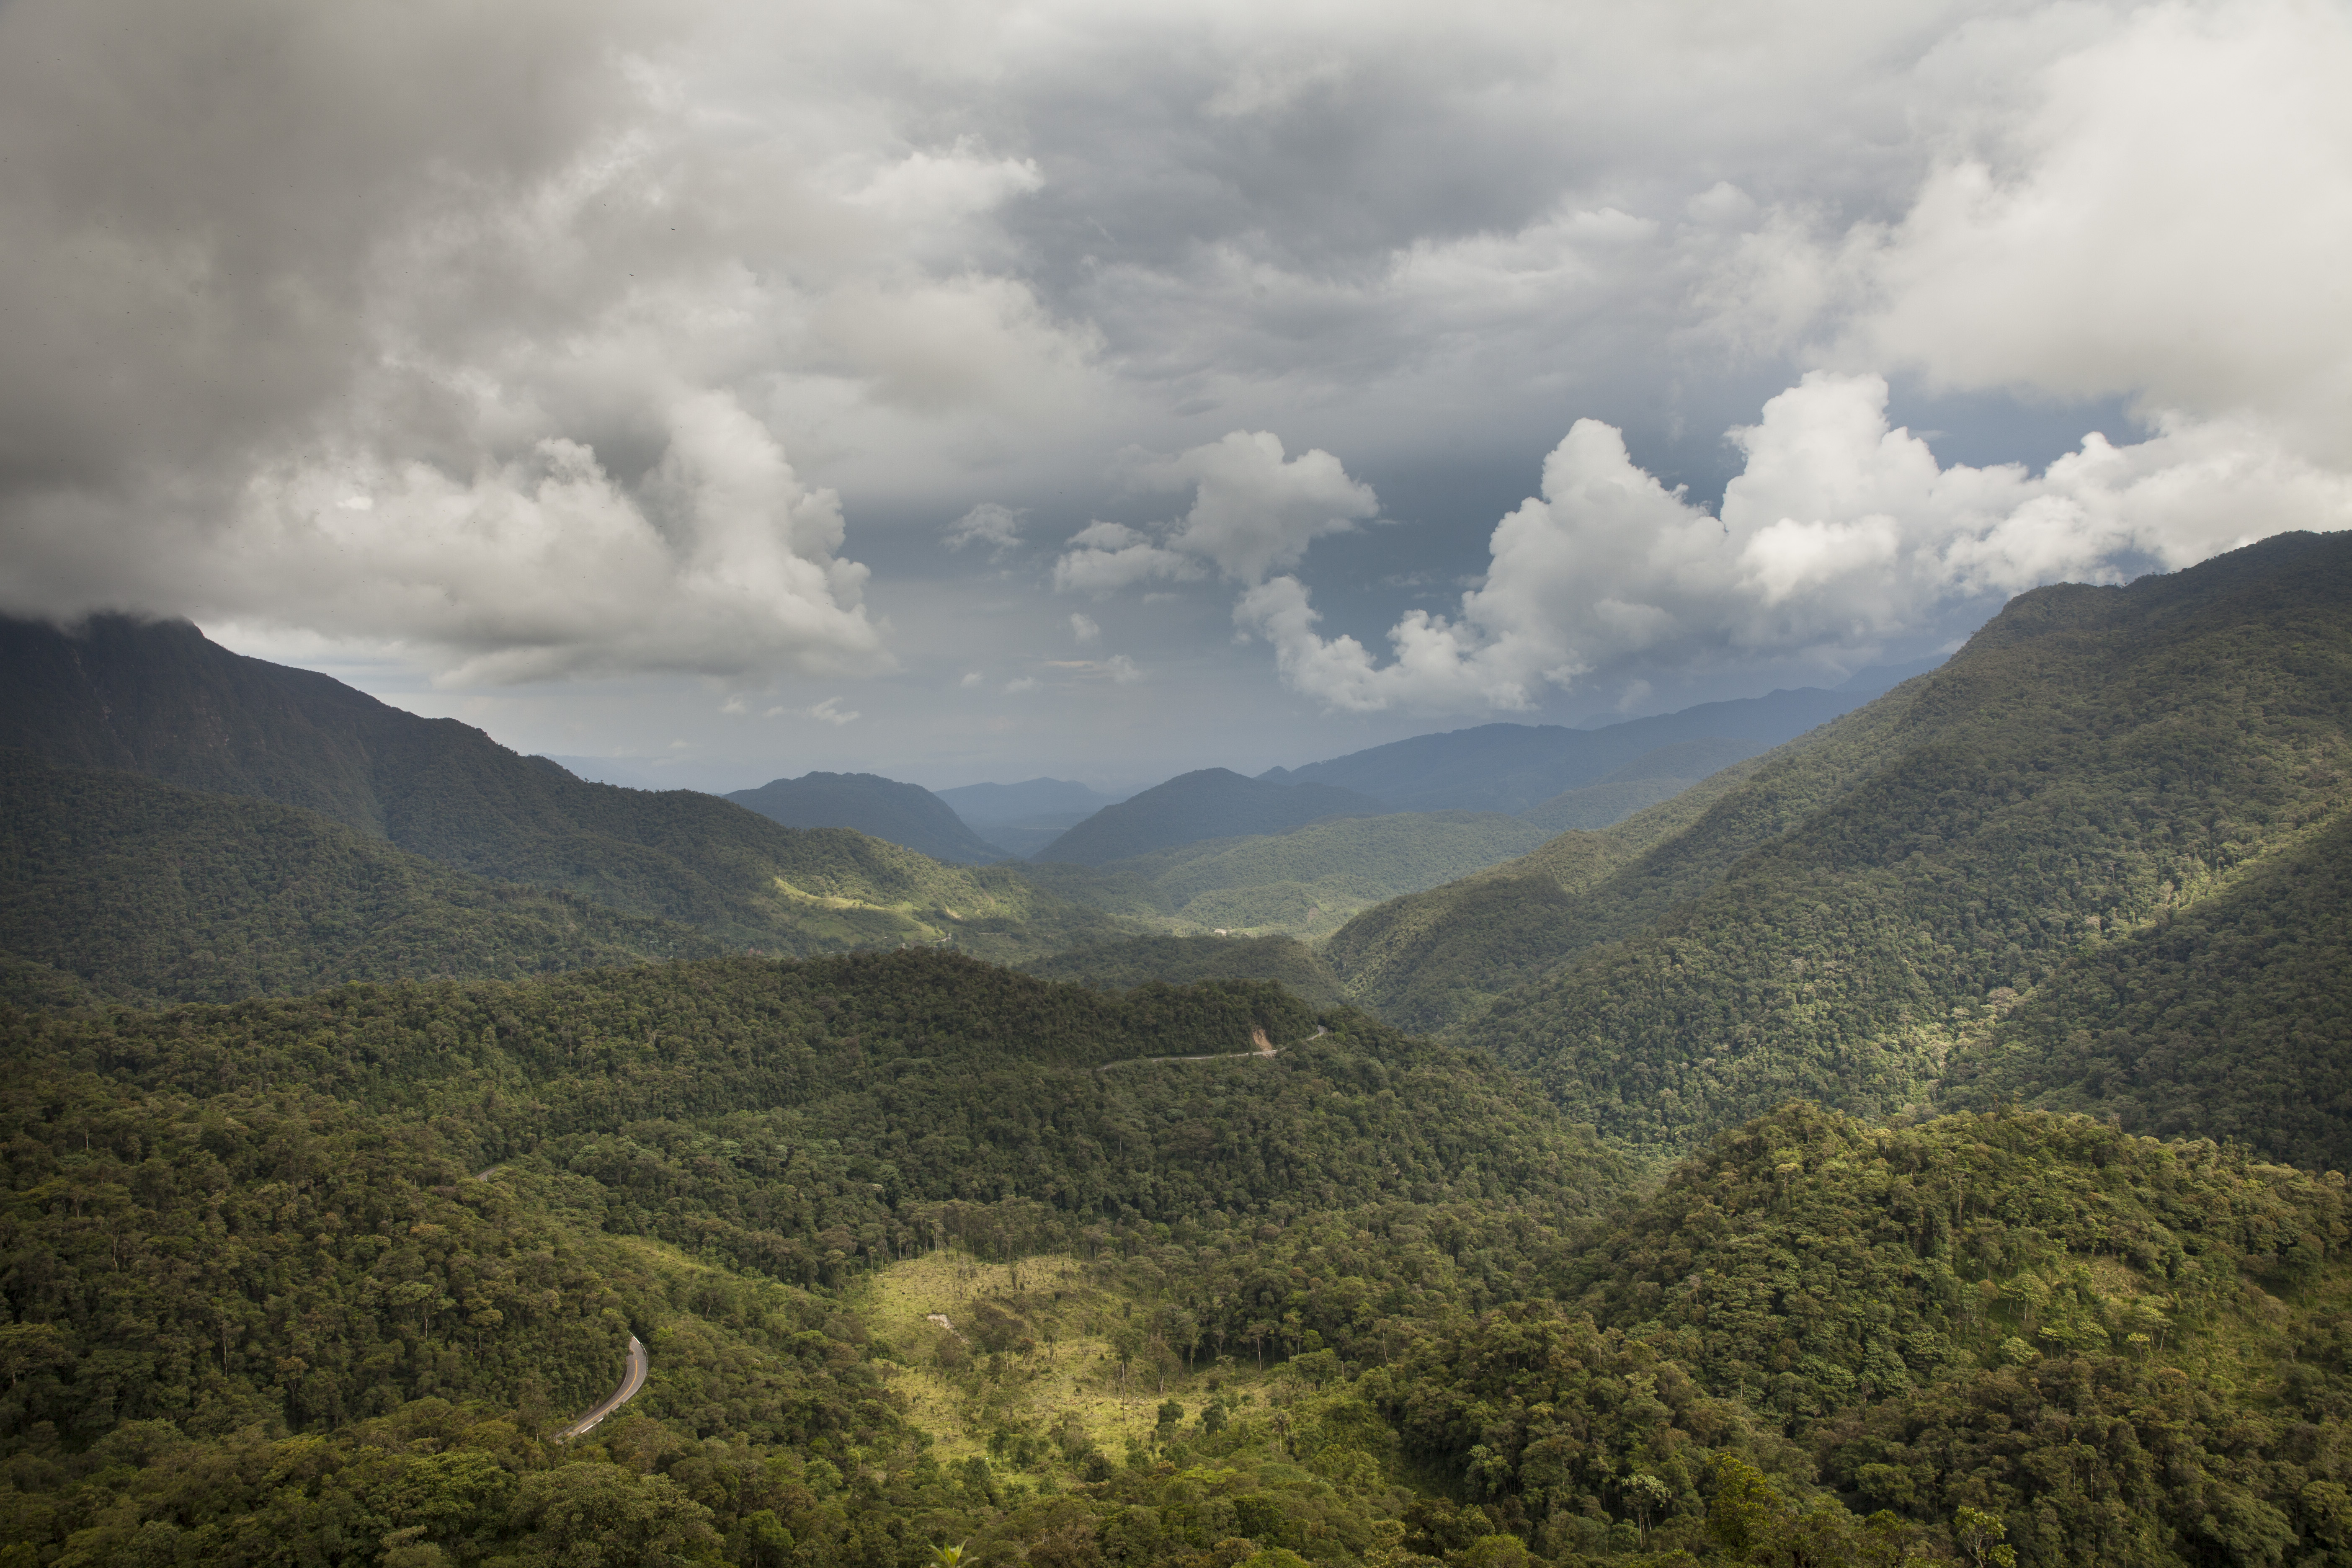 Disney Brings Conservation Efforts in Peru to U.S. Parks and Resorts